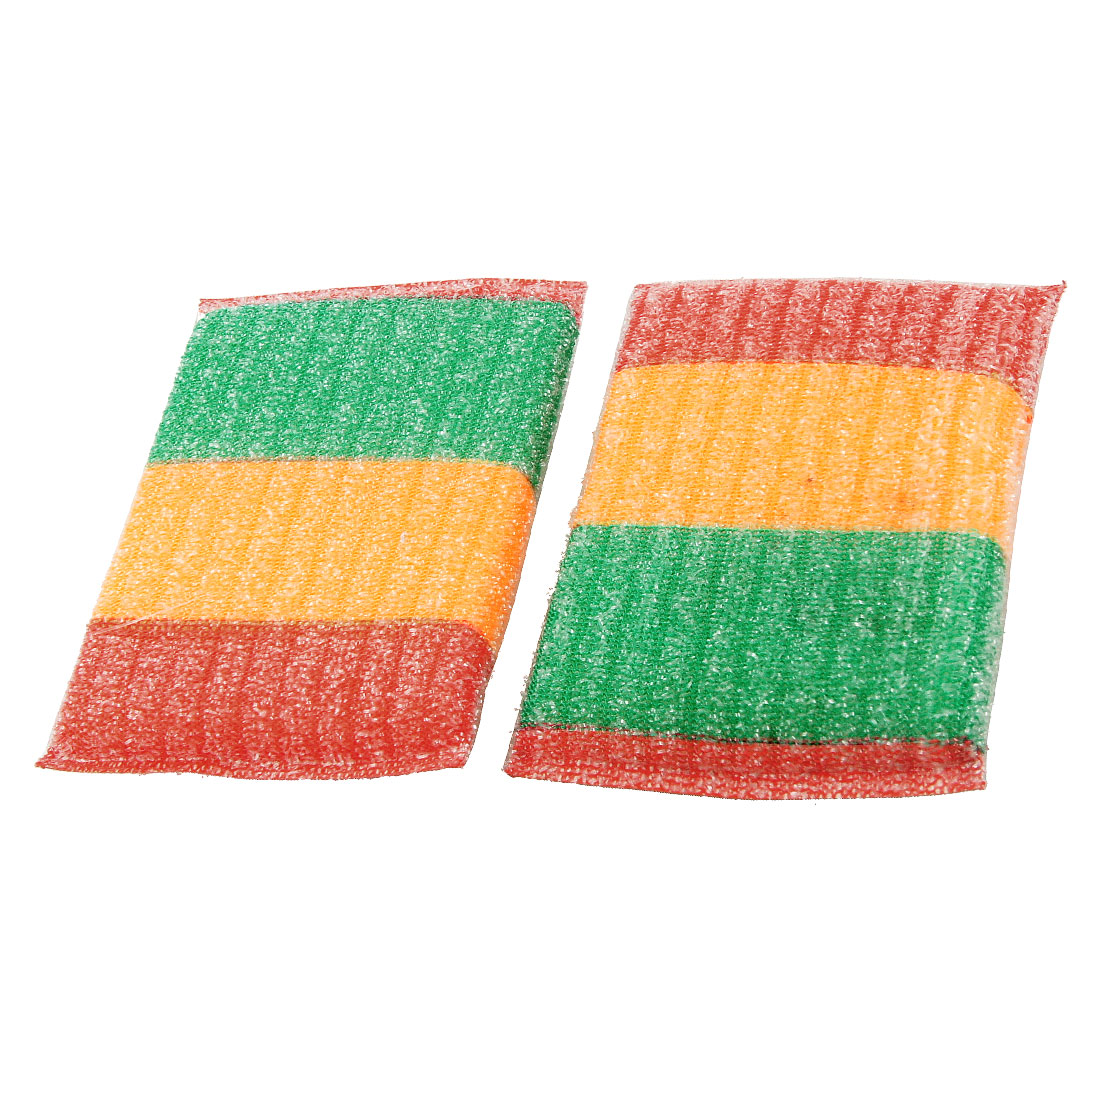 2 Pcs Multicolor Scrub Sponge Padded Dish Pad Bowl Cup Cleaner